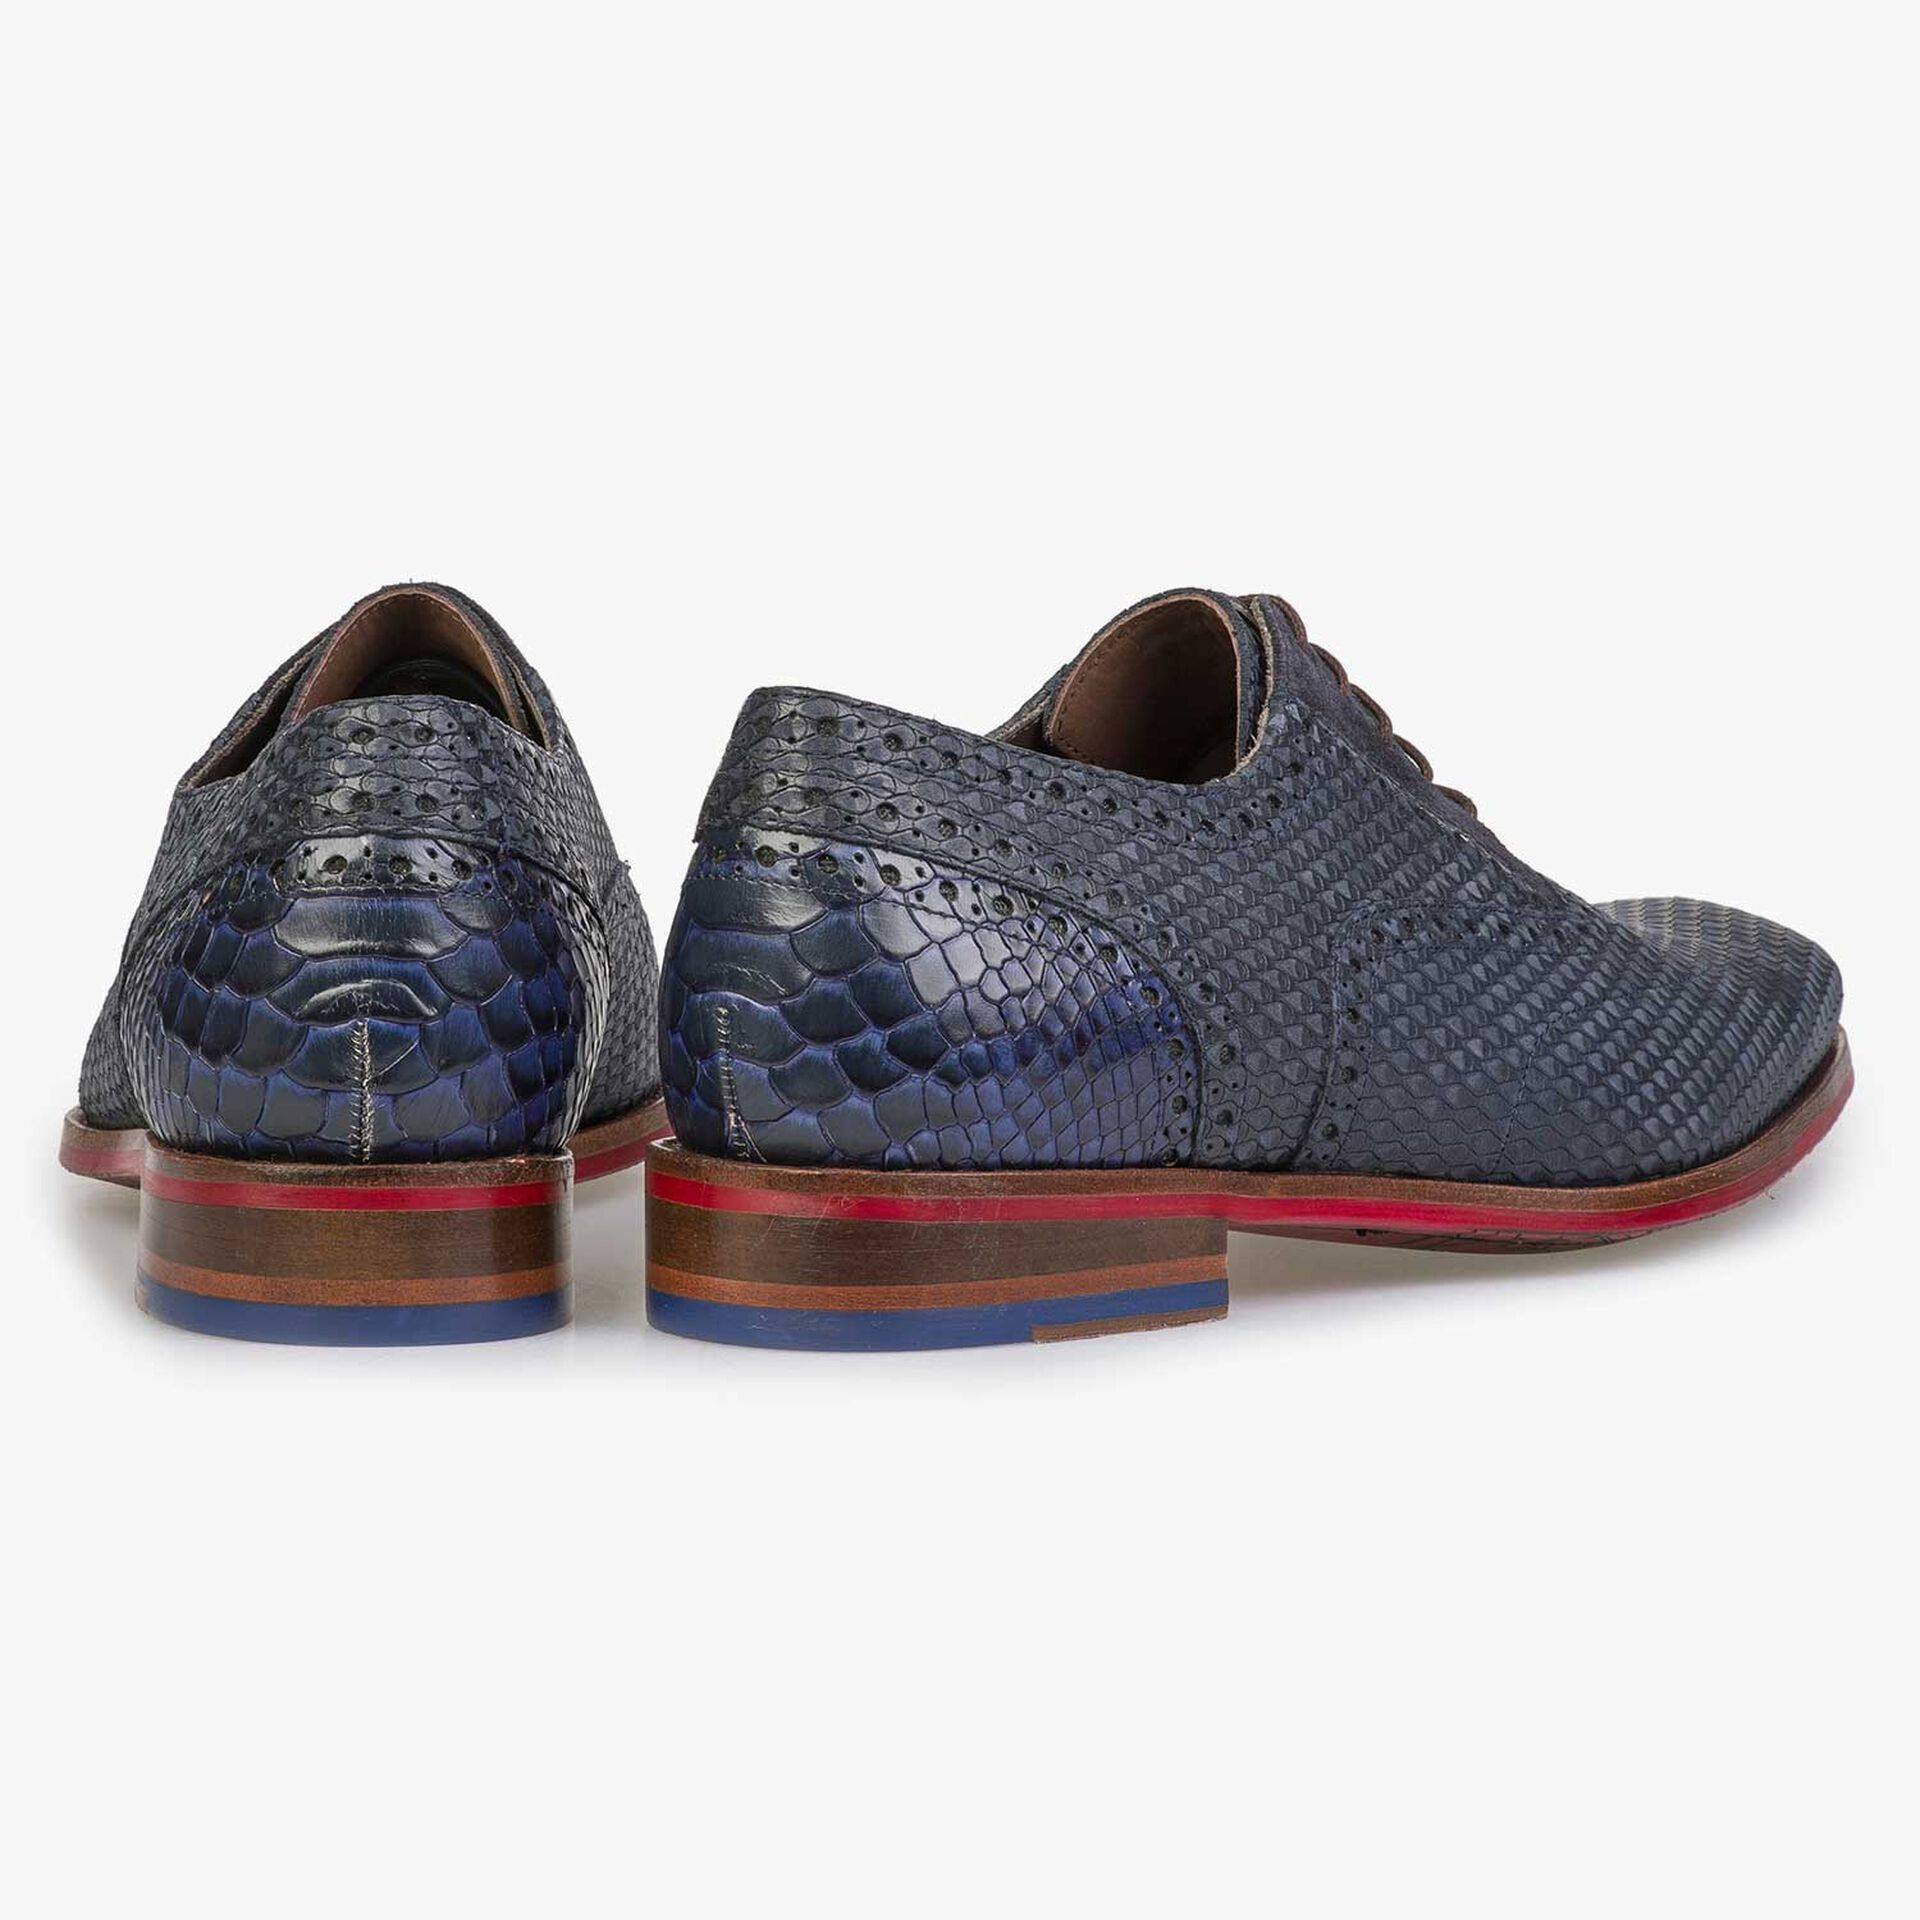 Blue nubuck leather lace shoe with snake print